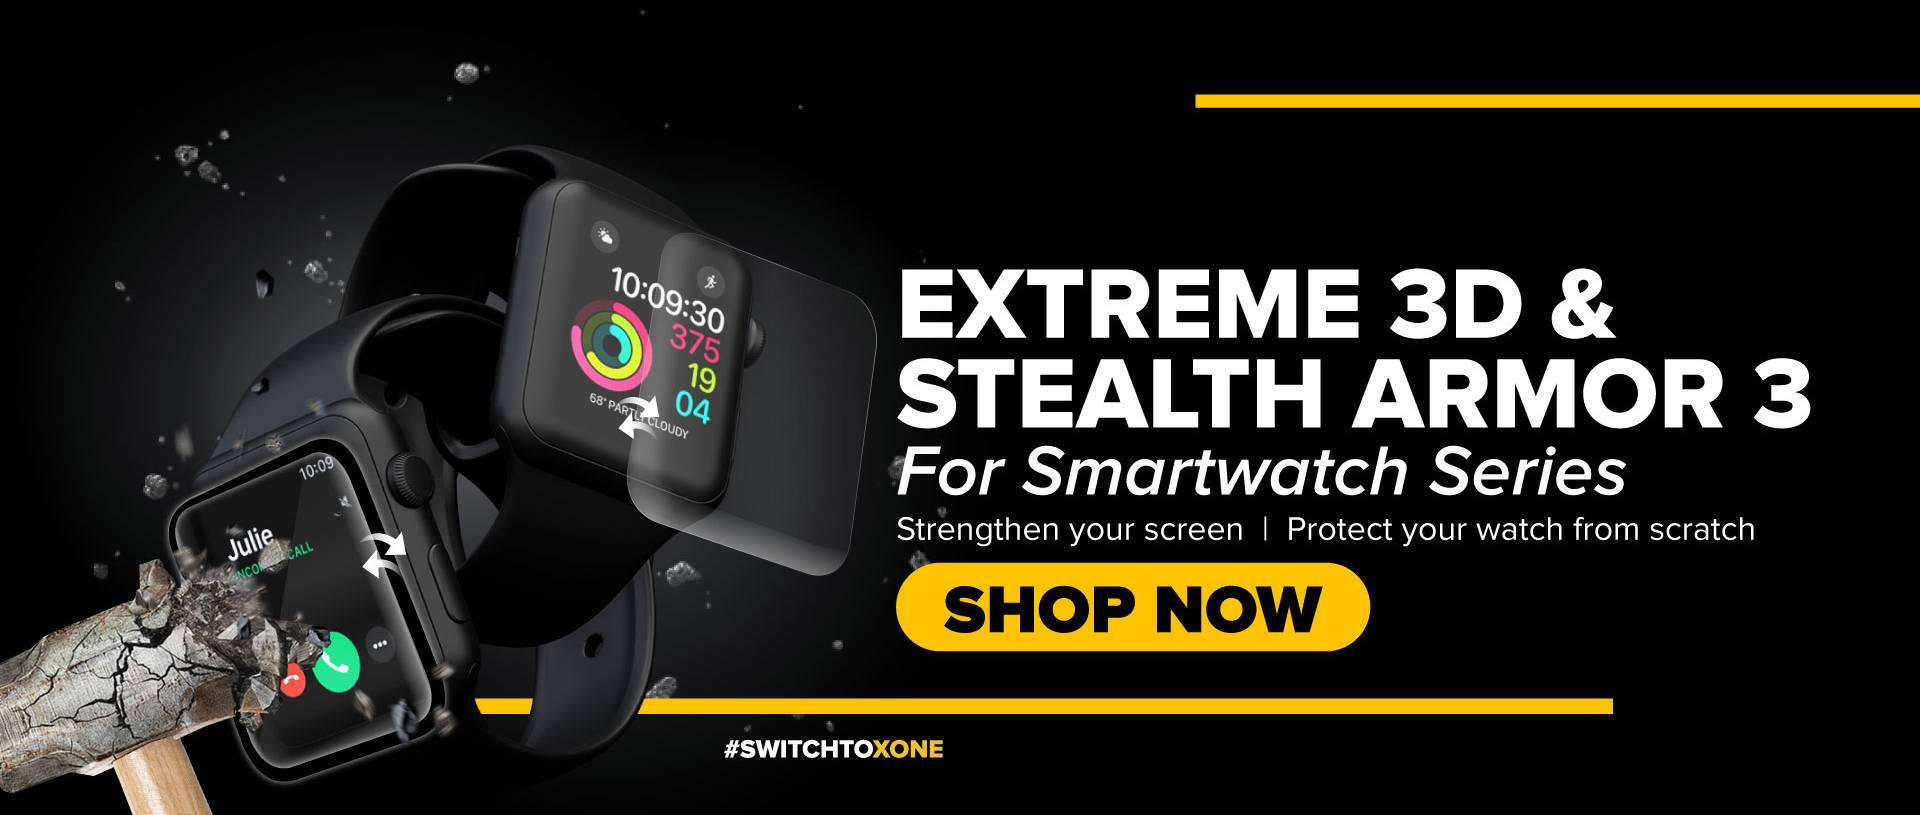 X.One® - Protect Your SmartWatch